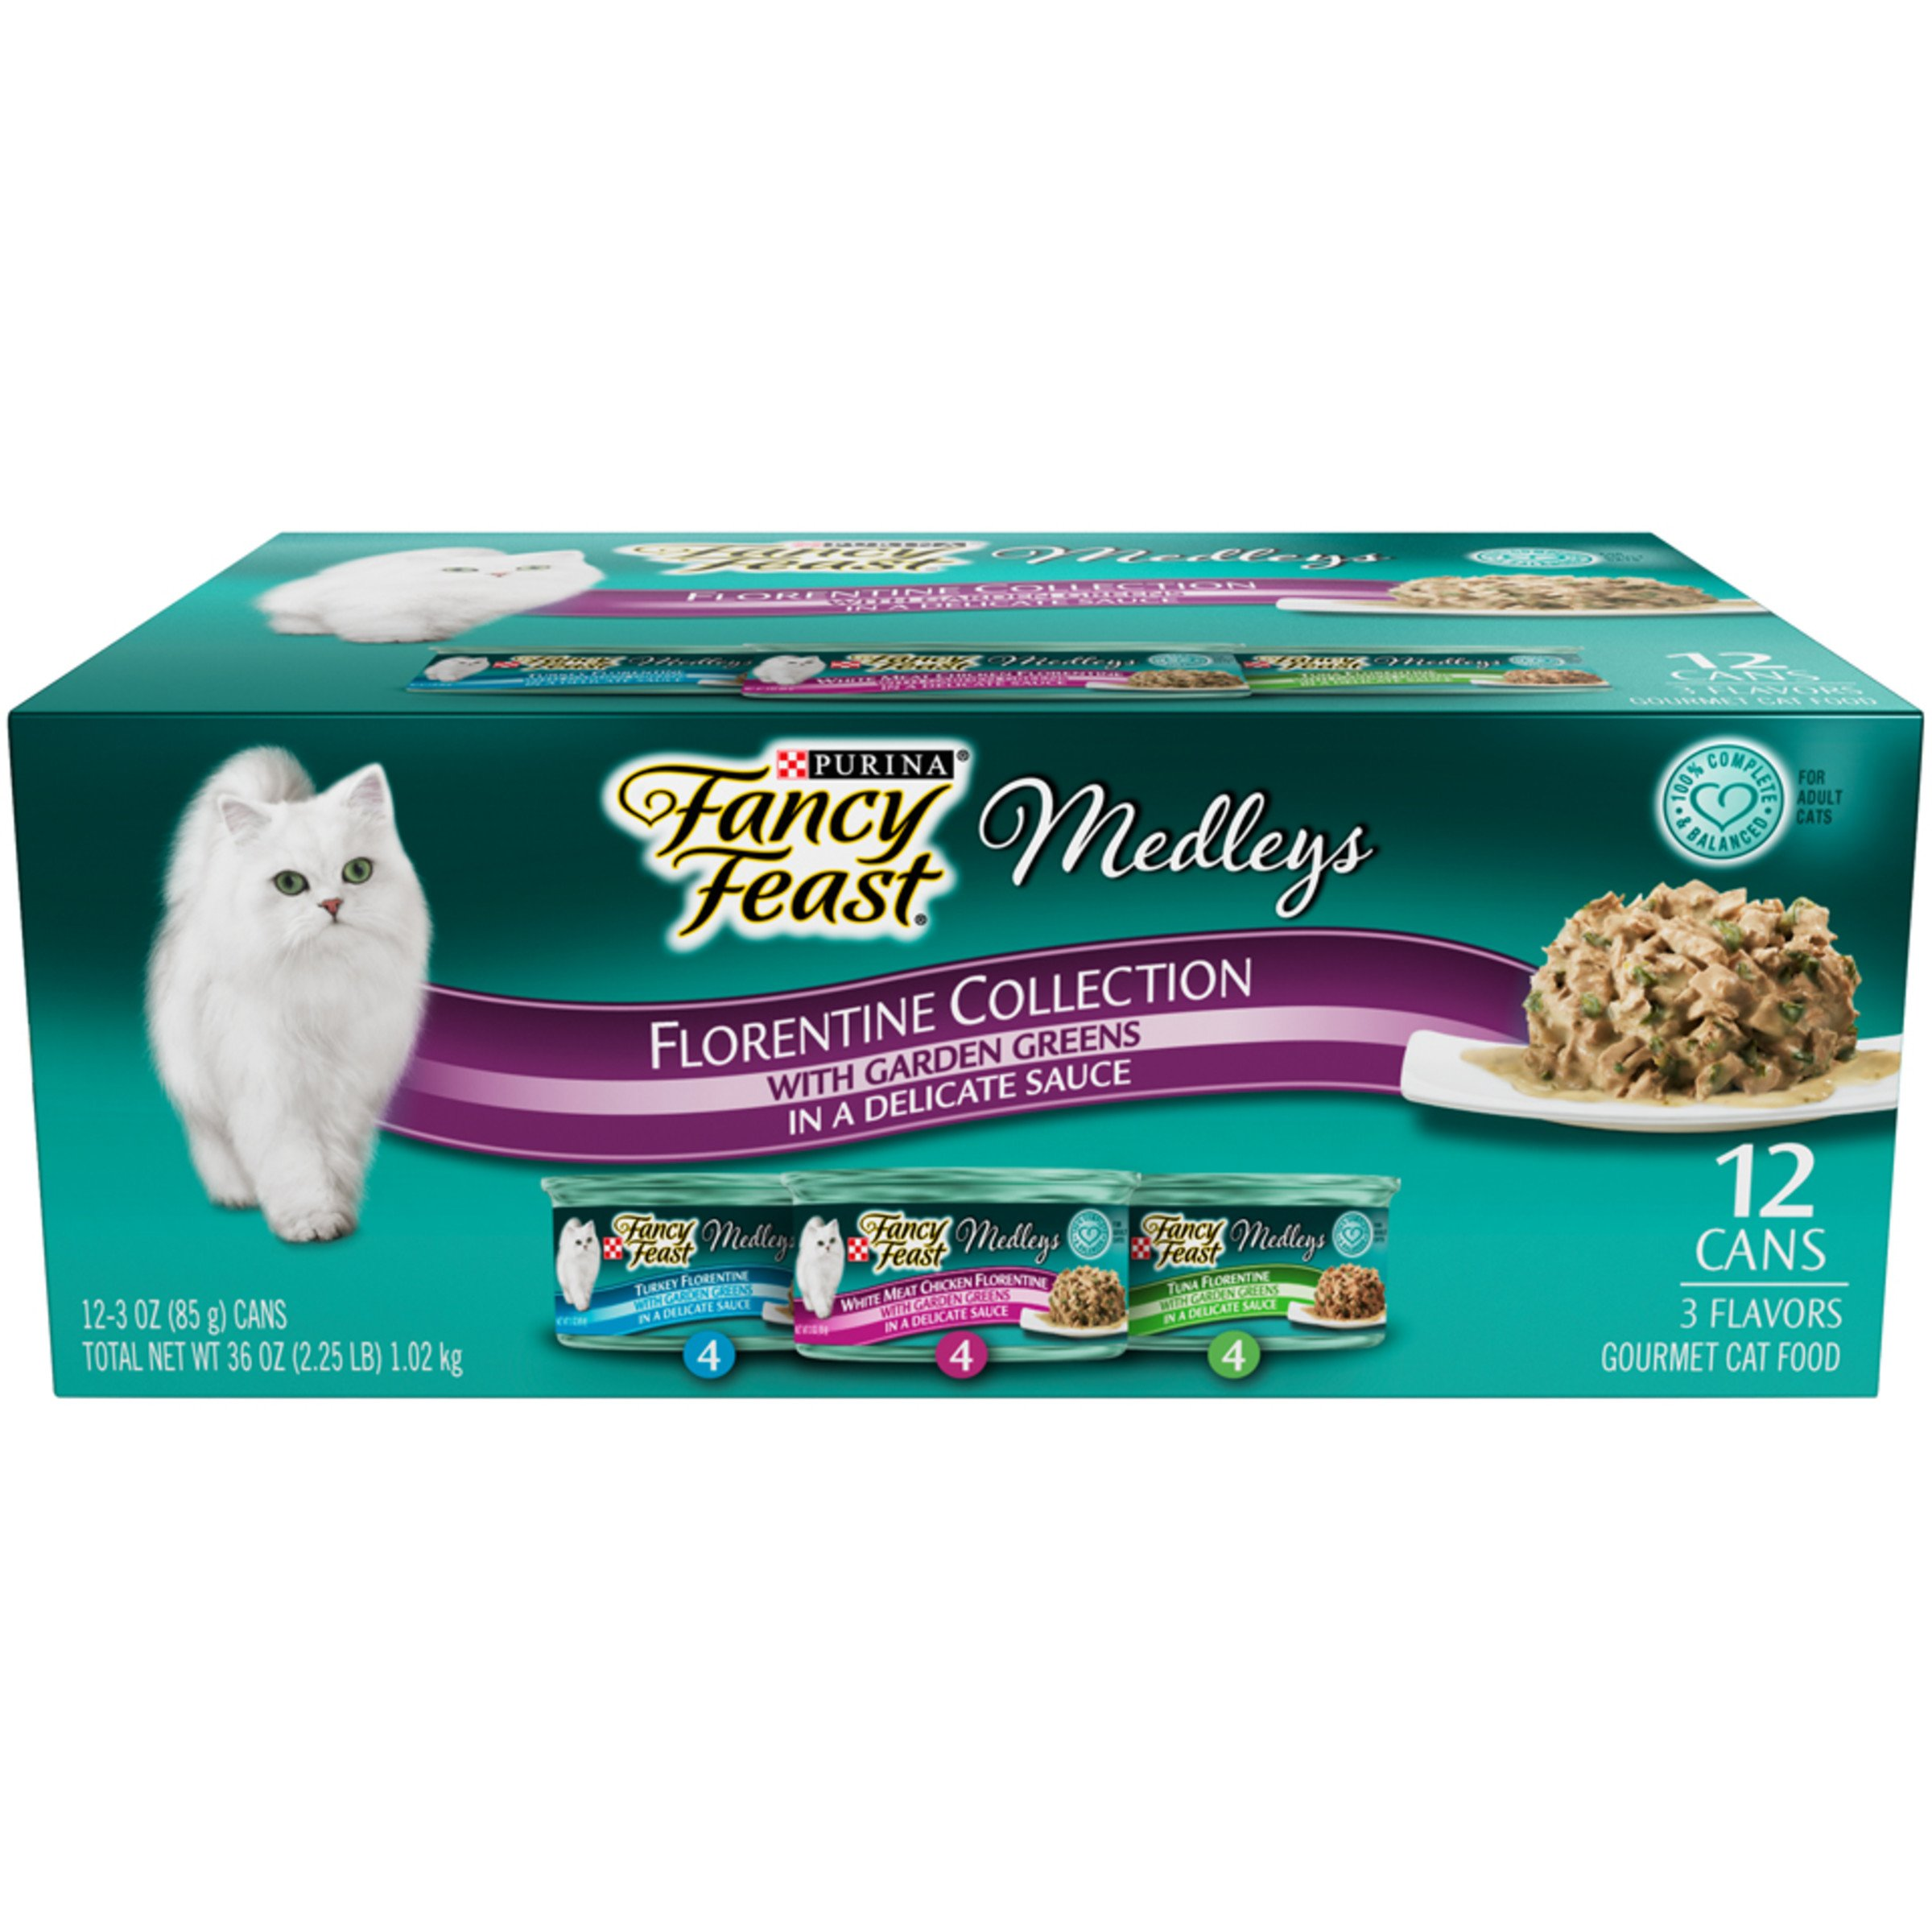 Purina Fancy Feast Medleys Florentine Collection Gourmet Wet Cat Food Variety Pack - (24) 3 oz. Cans